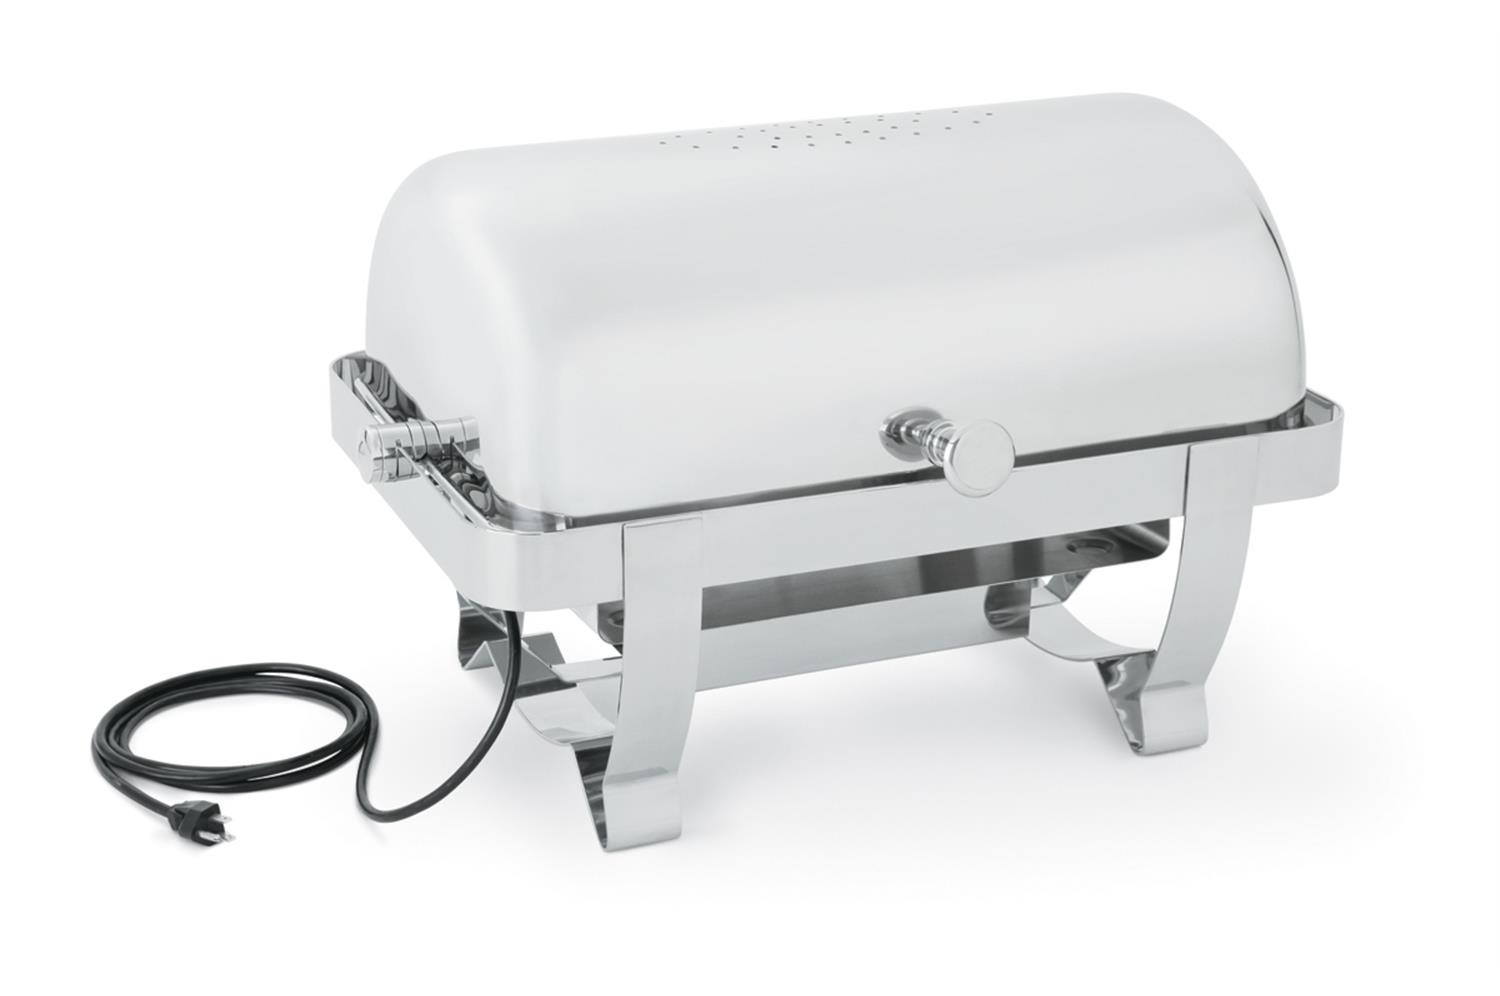 Vollrath 46529 Orion Retractable Full Size Electric Chafer 9 Qt.